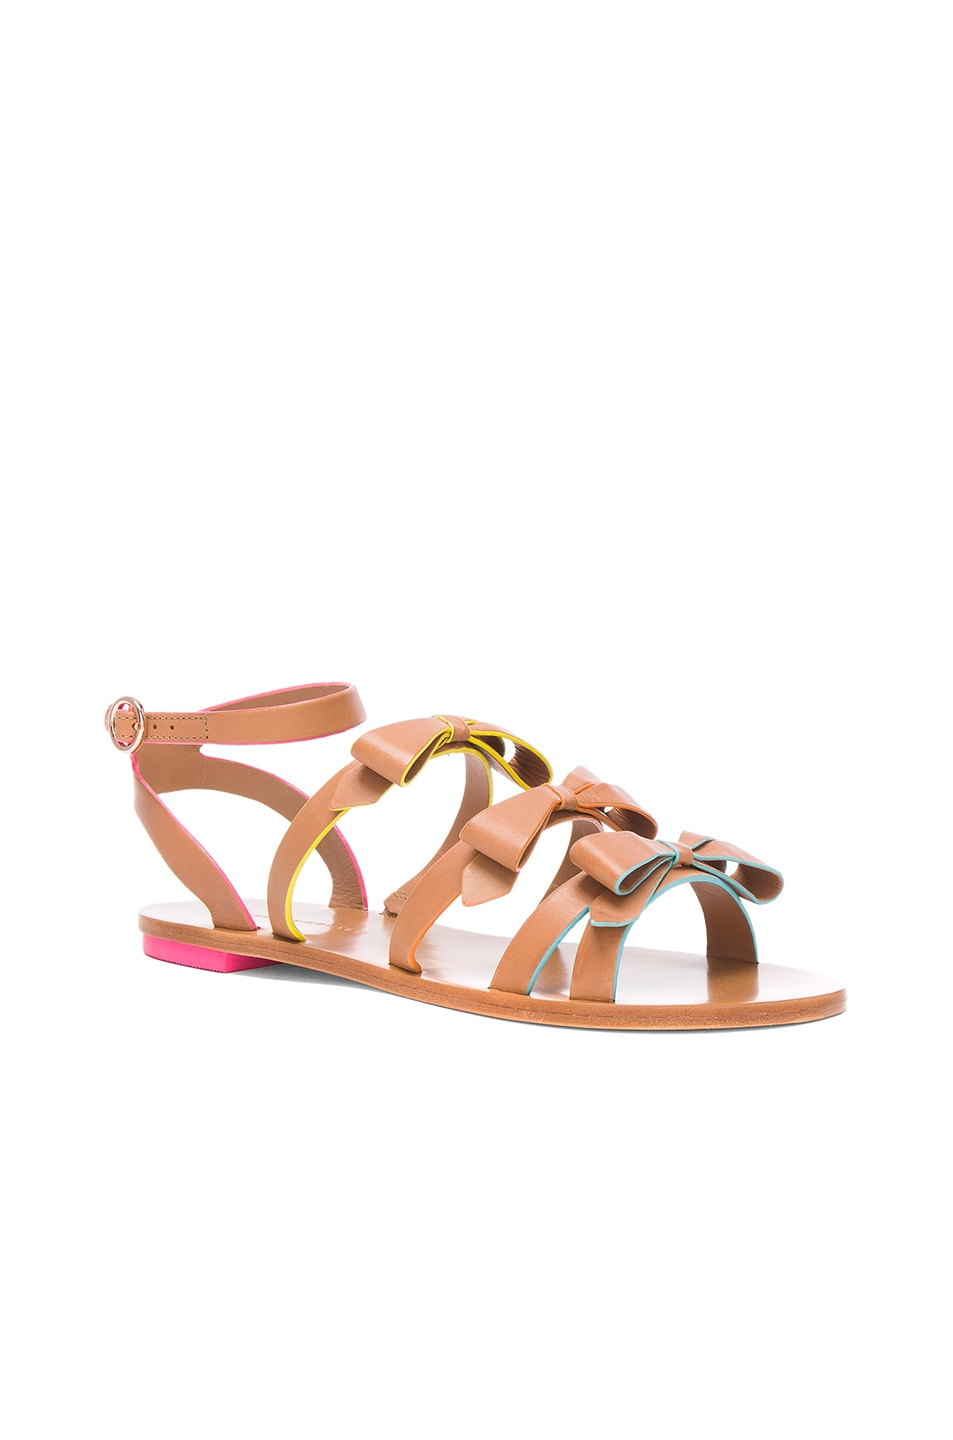 Image 2 of Sophia Webster Leather Samara Flat Sandals in Tan